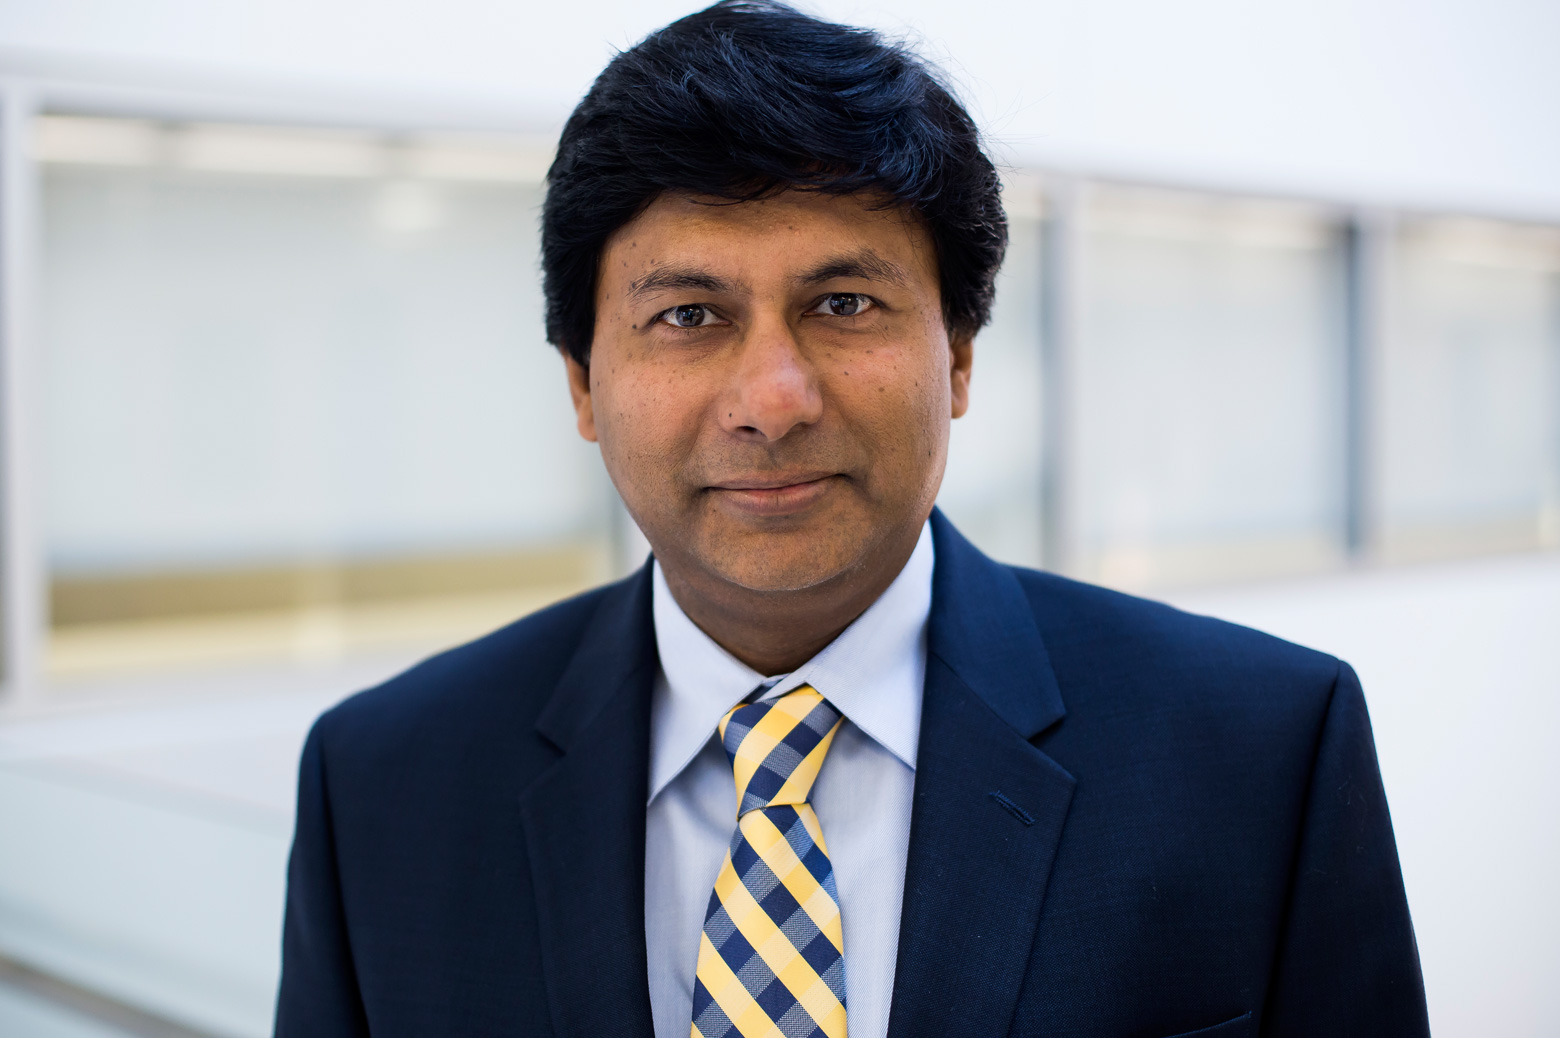 Materials science and engineering professor and department chair Amit Misra. Photo: Joseph Xu